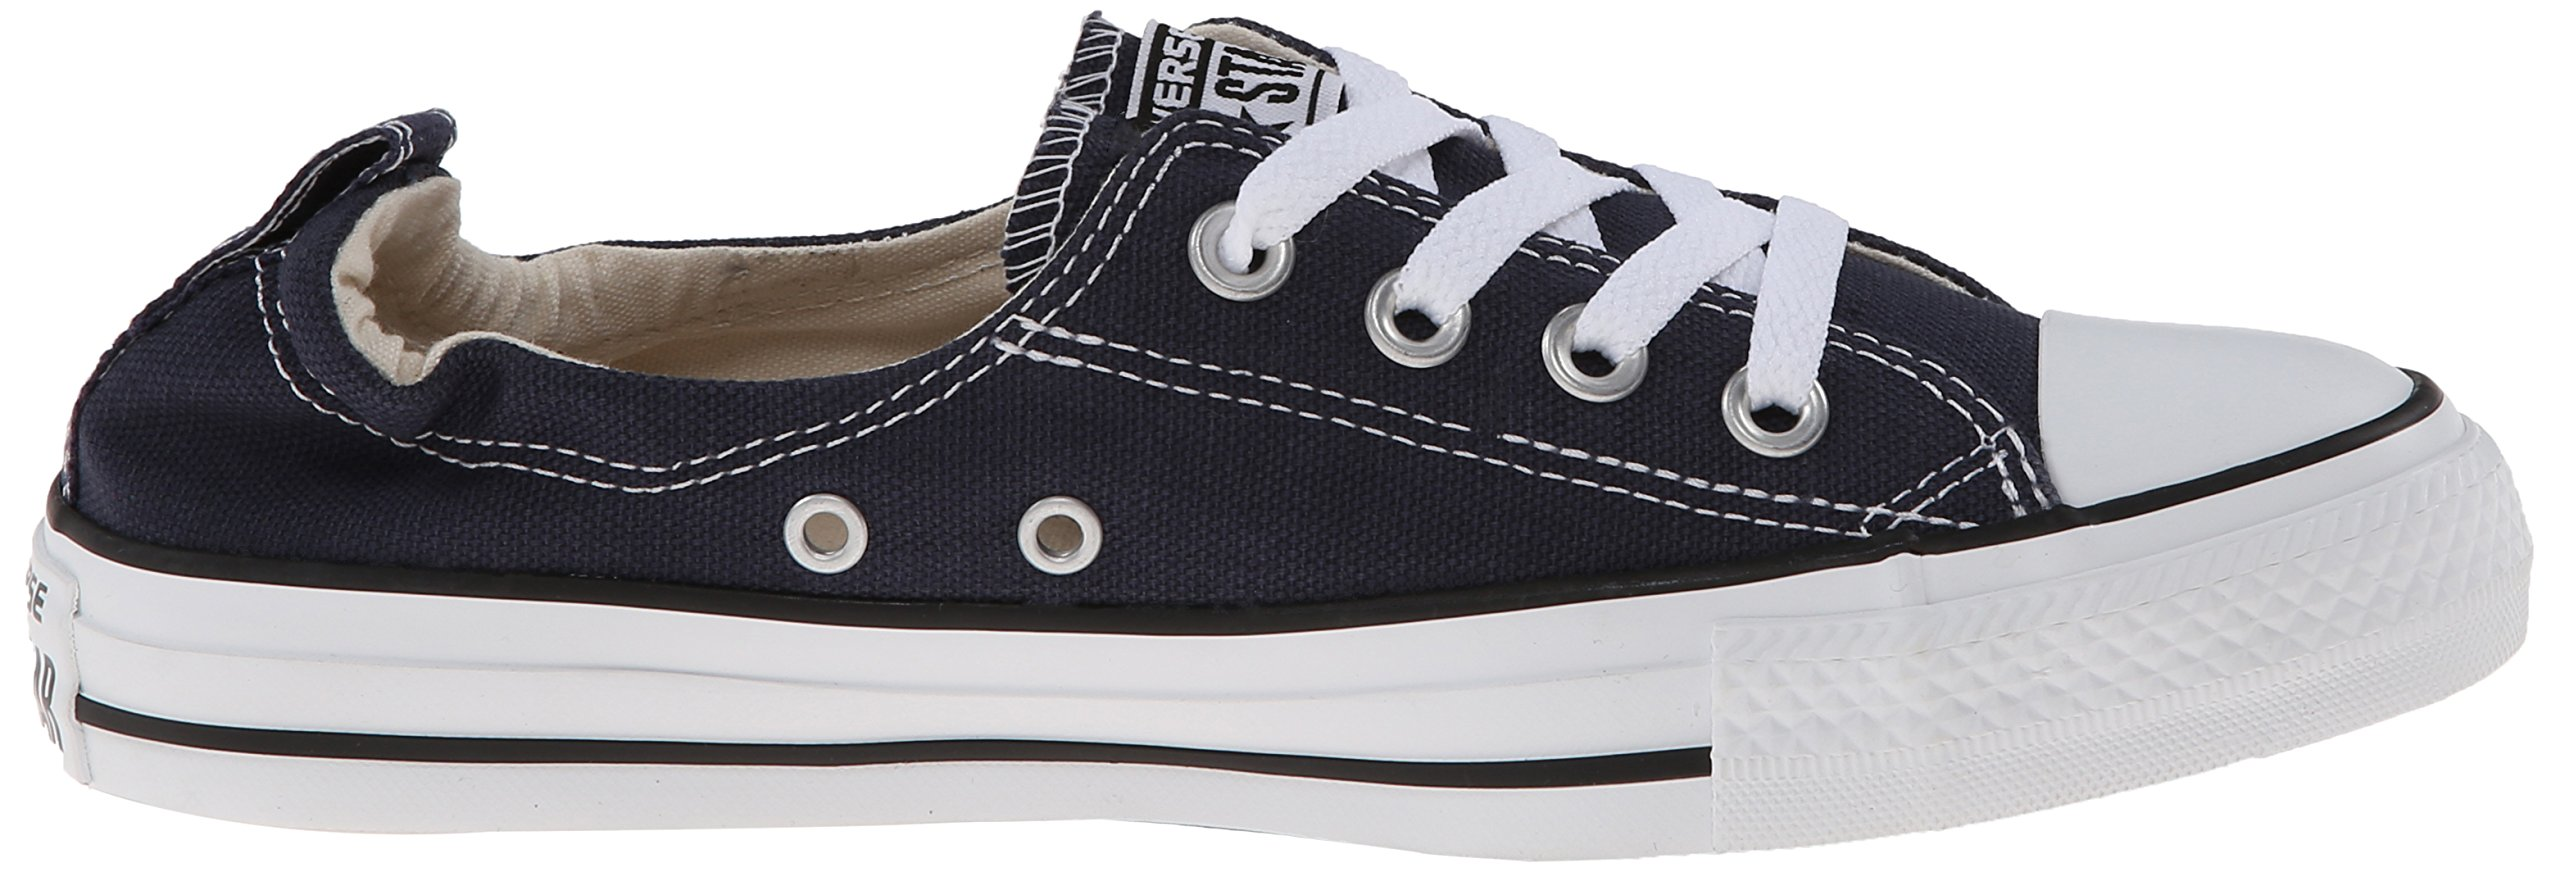 5879e4642440c2 Converse Chuck Taylor All Star Shoreline Navy Lace-Up Sneaker - 9 B(M) US -  537080F-410-9 M US   Fashion Sneakers   Clothing